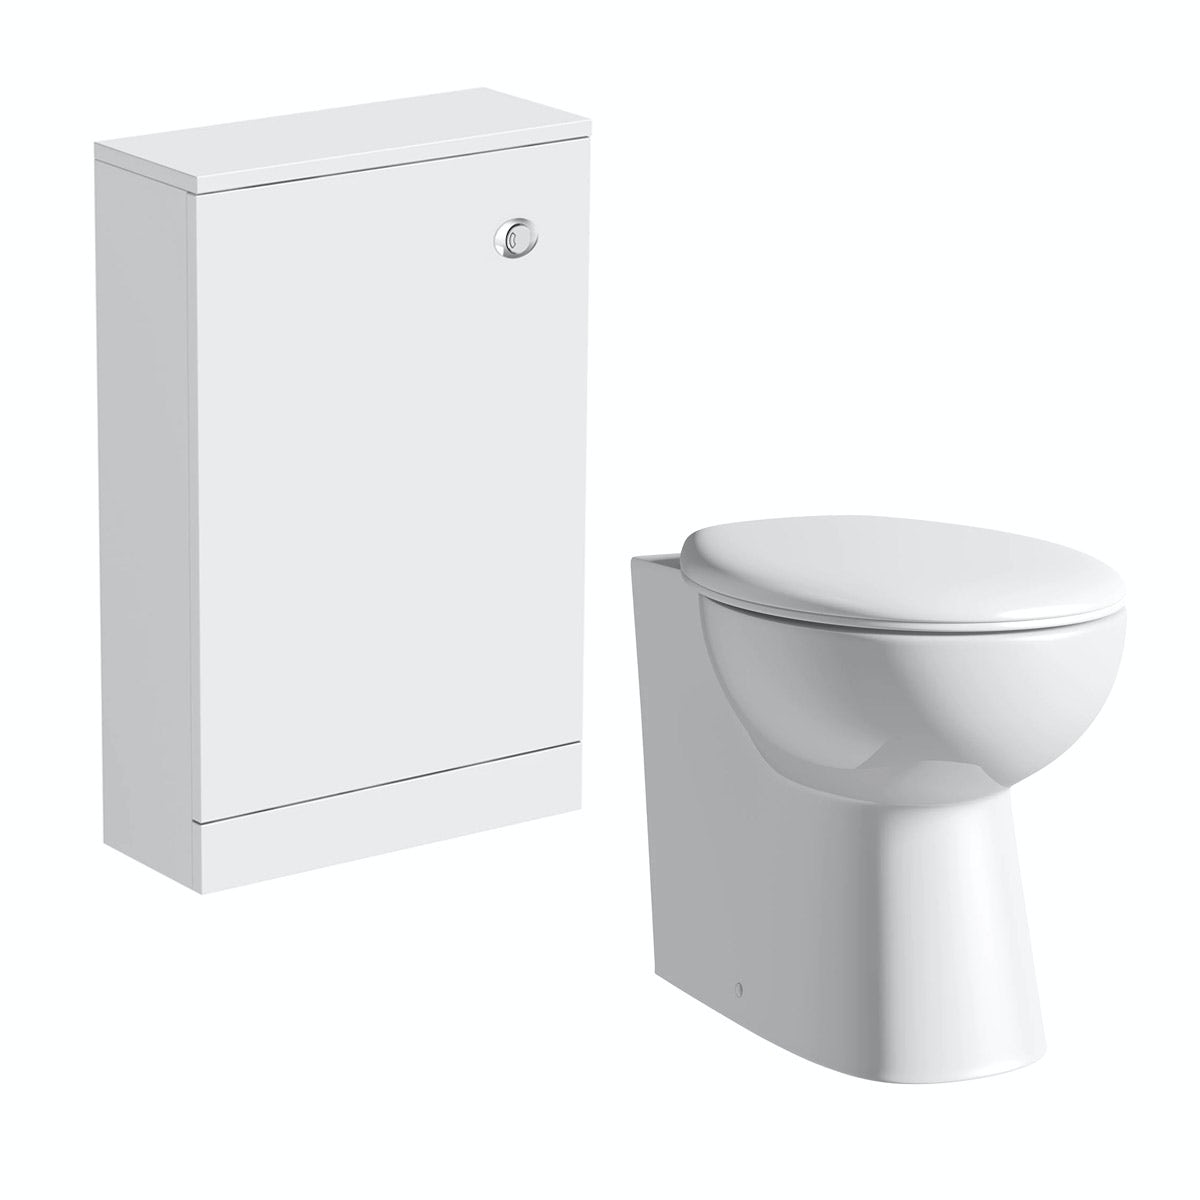 Clarity white back to wall toilet unit and toilet with seat